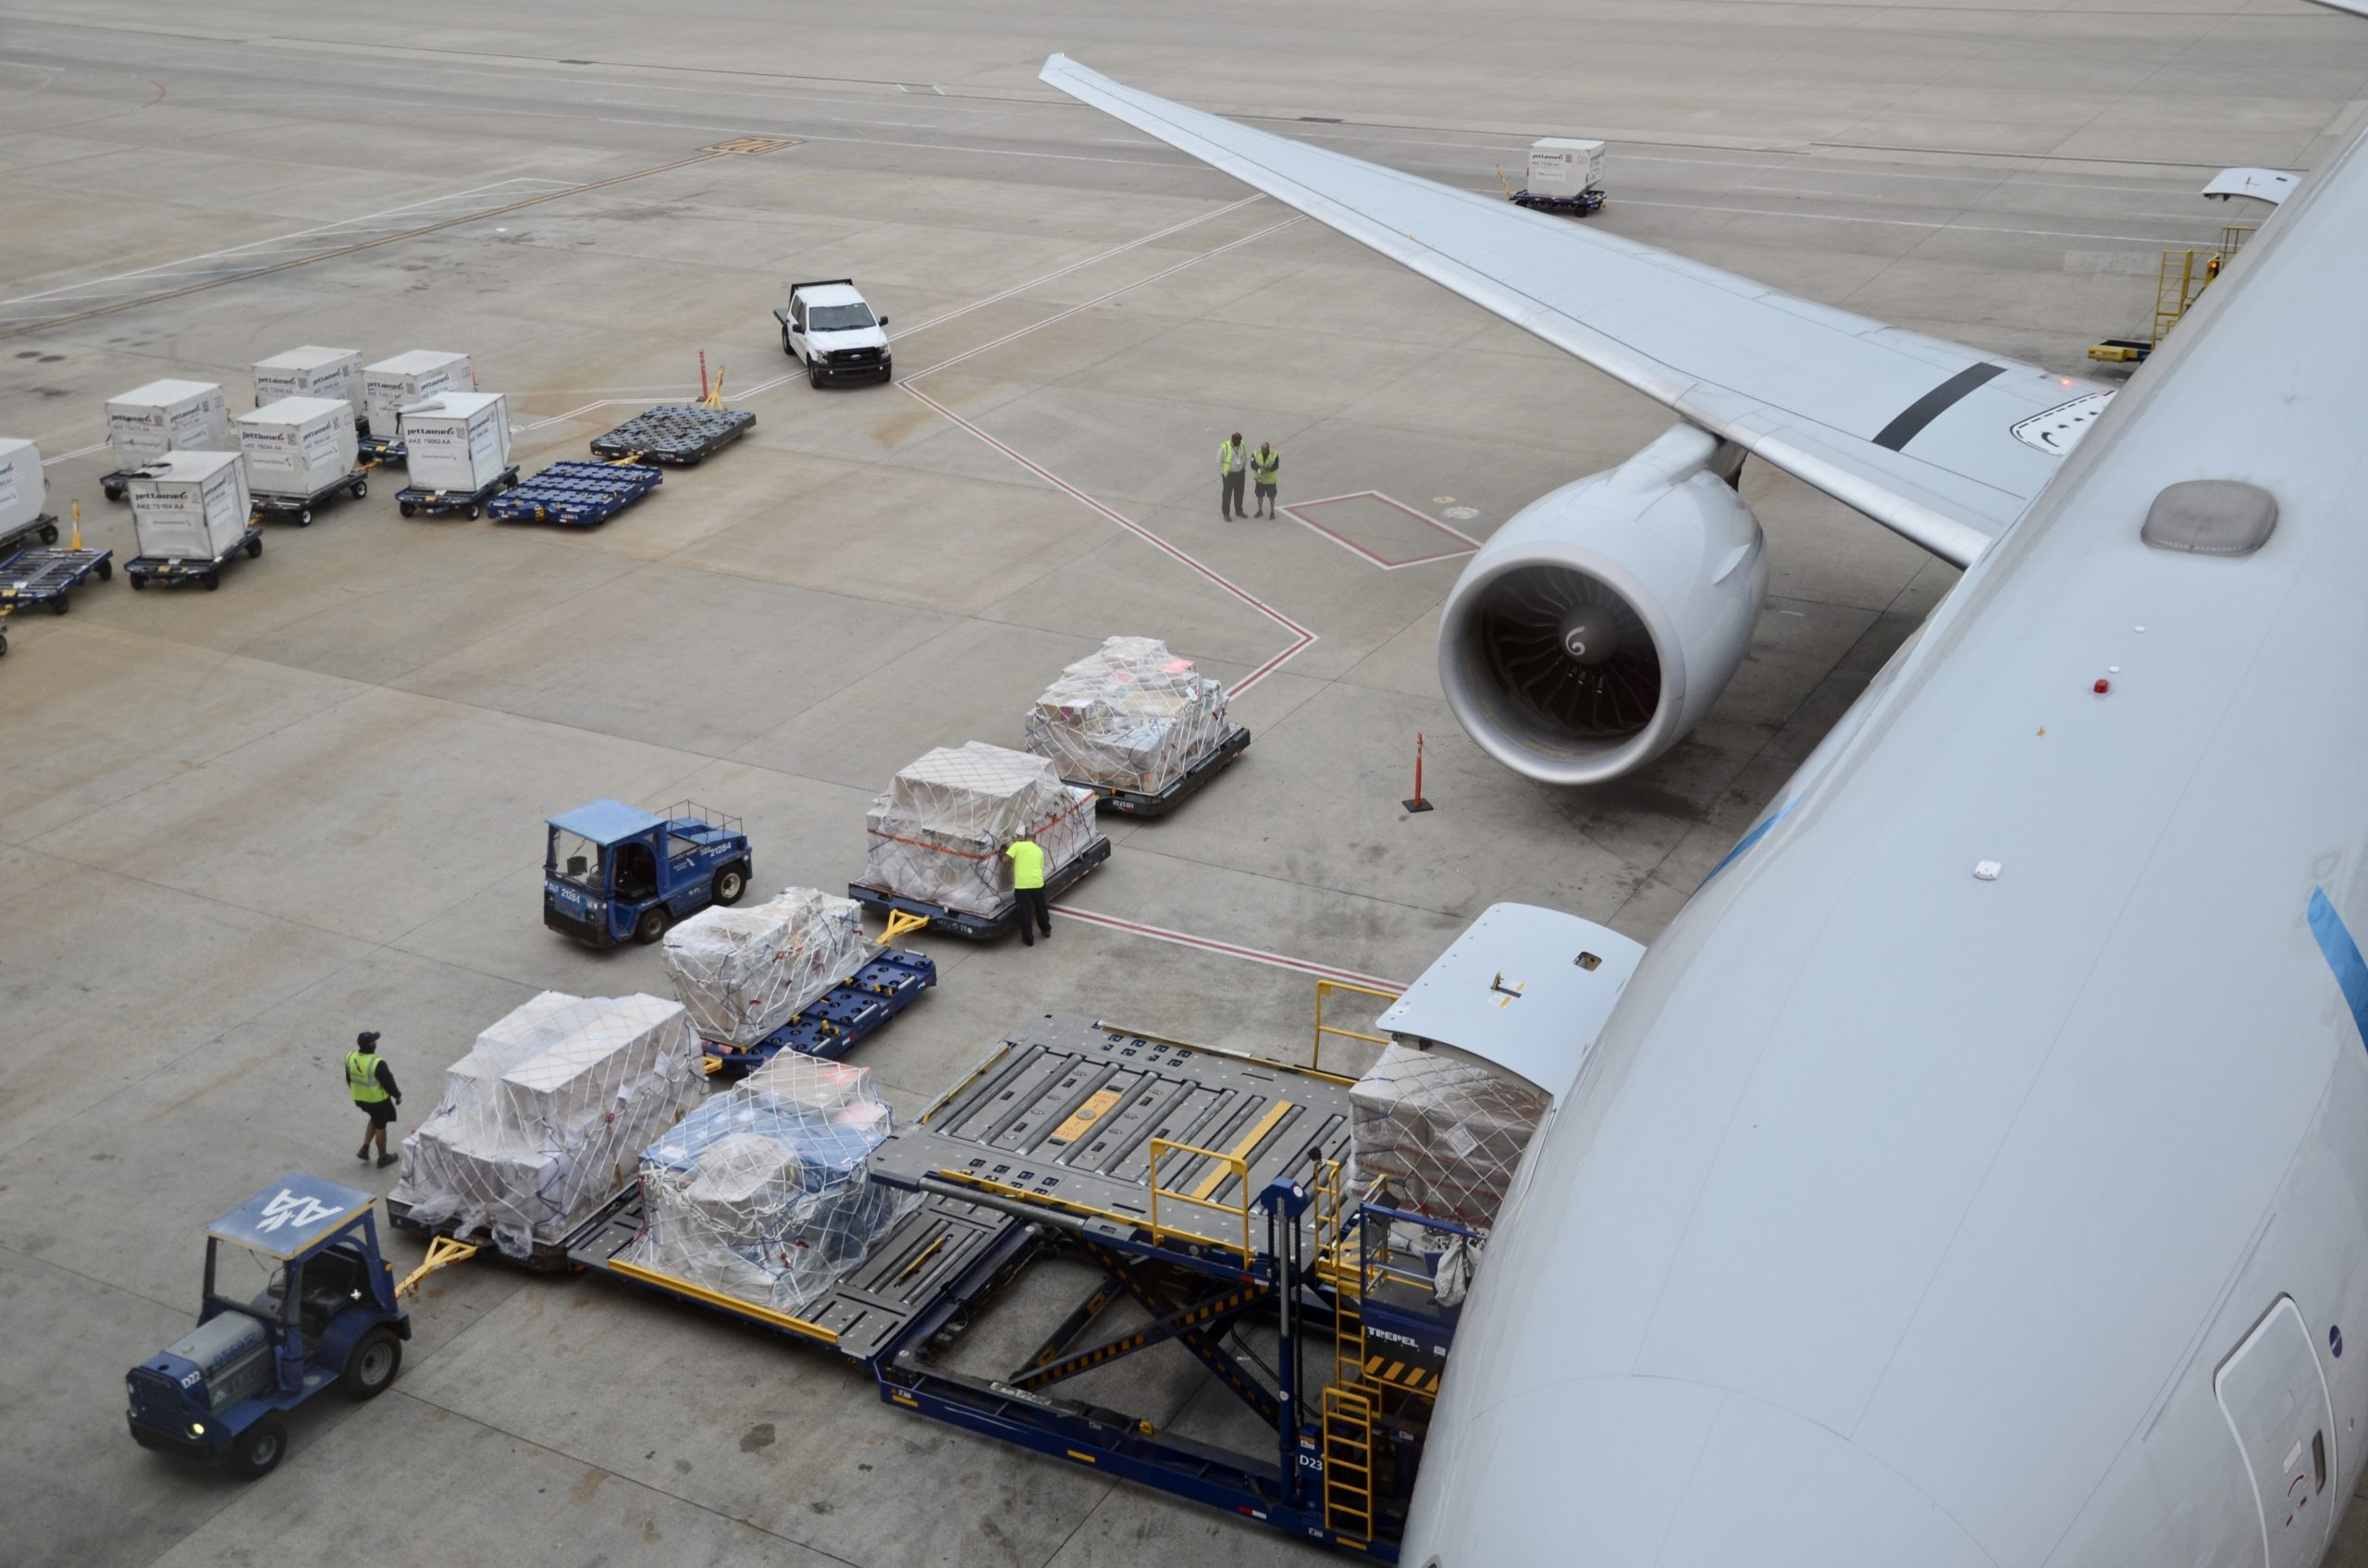 Belly cargo being loaded onto an American Airlines Boeing 777-300ER at Dallas-Ft. Worth International Airport.